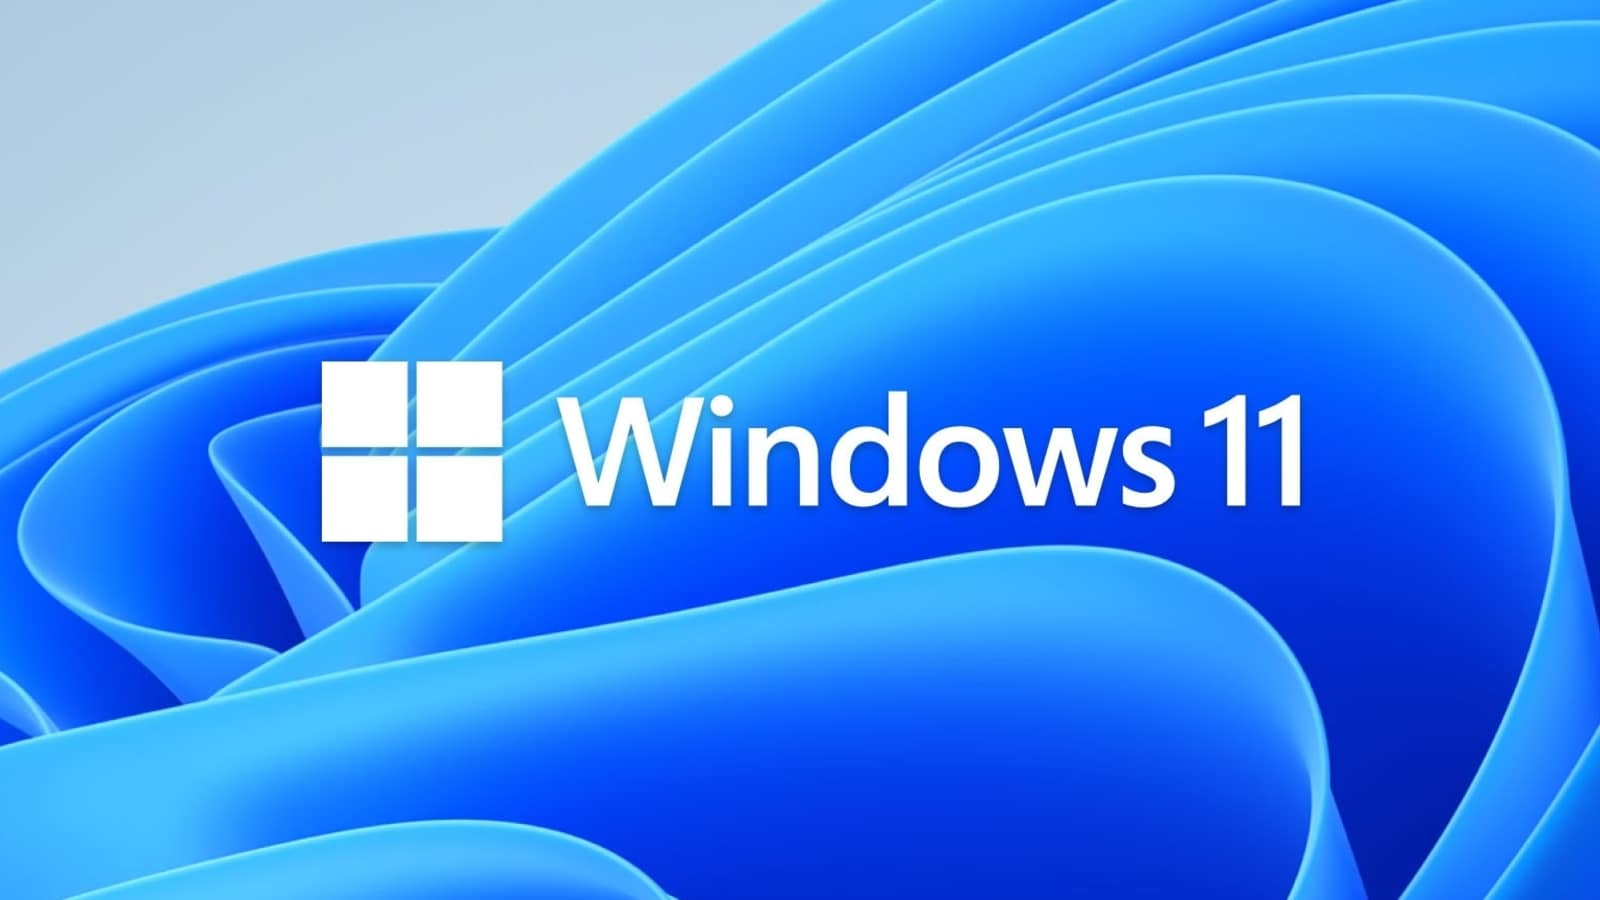 Fake Windows 11 installers give people malware, which is not surprising